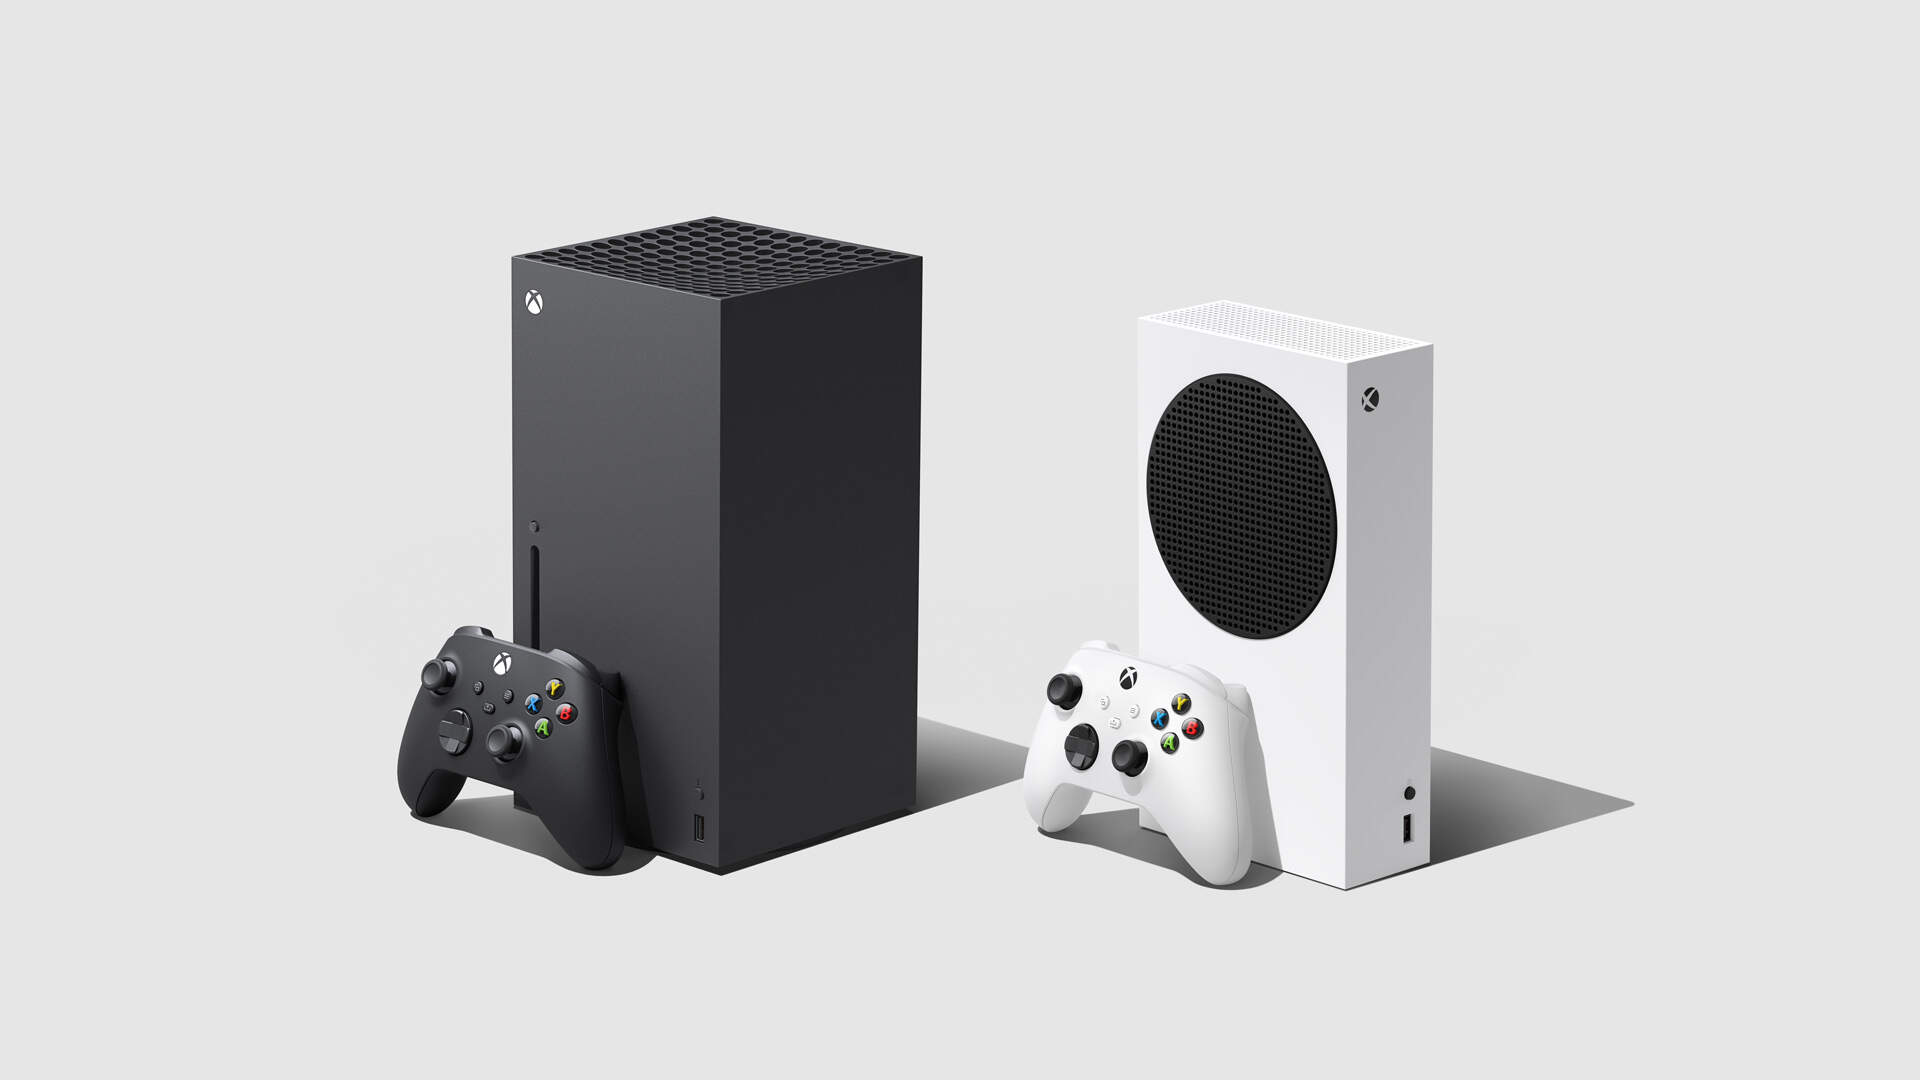 Here's What the Xbox Series X and S User Experience Looks Like